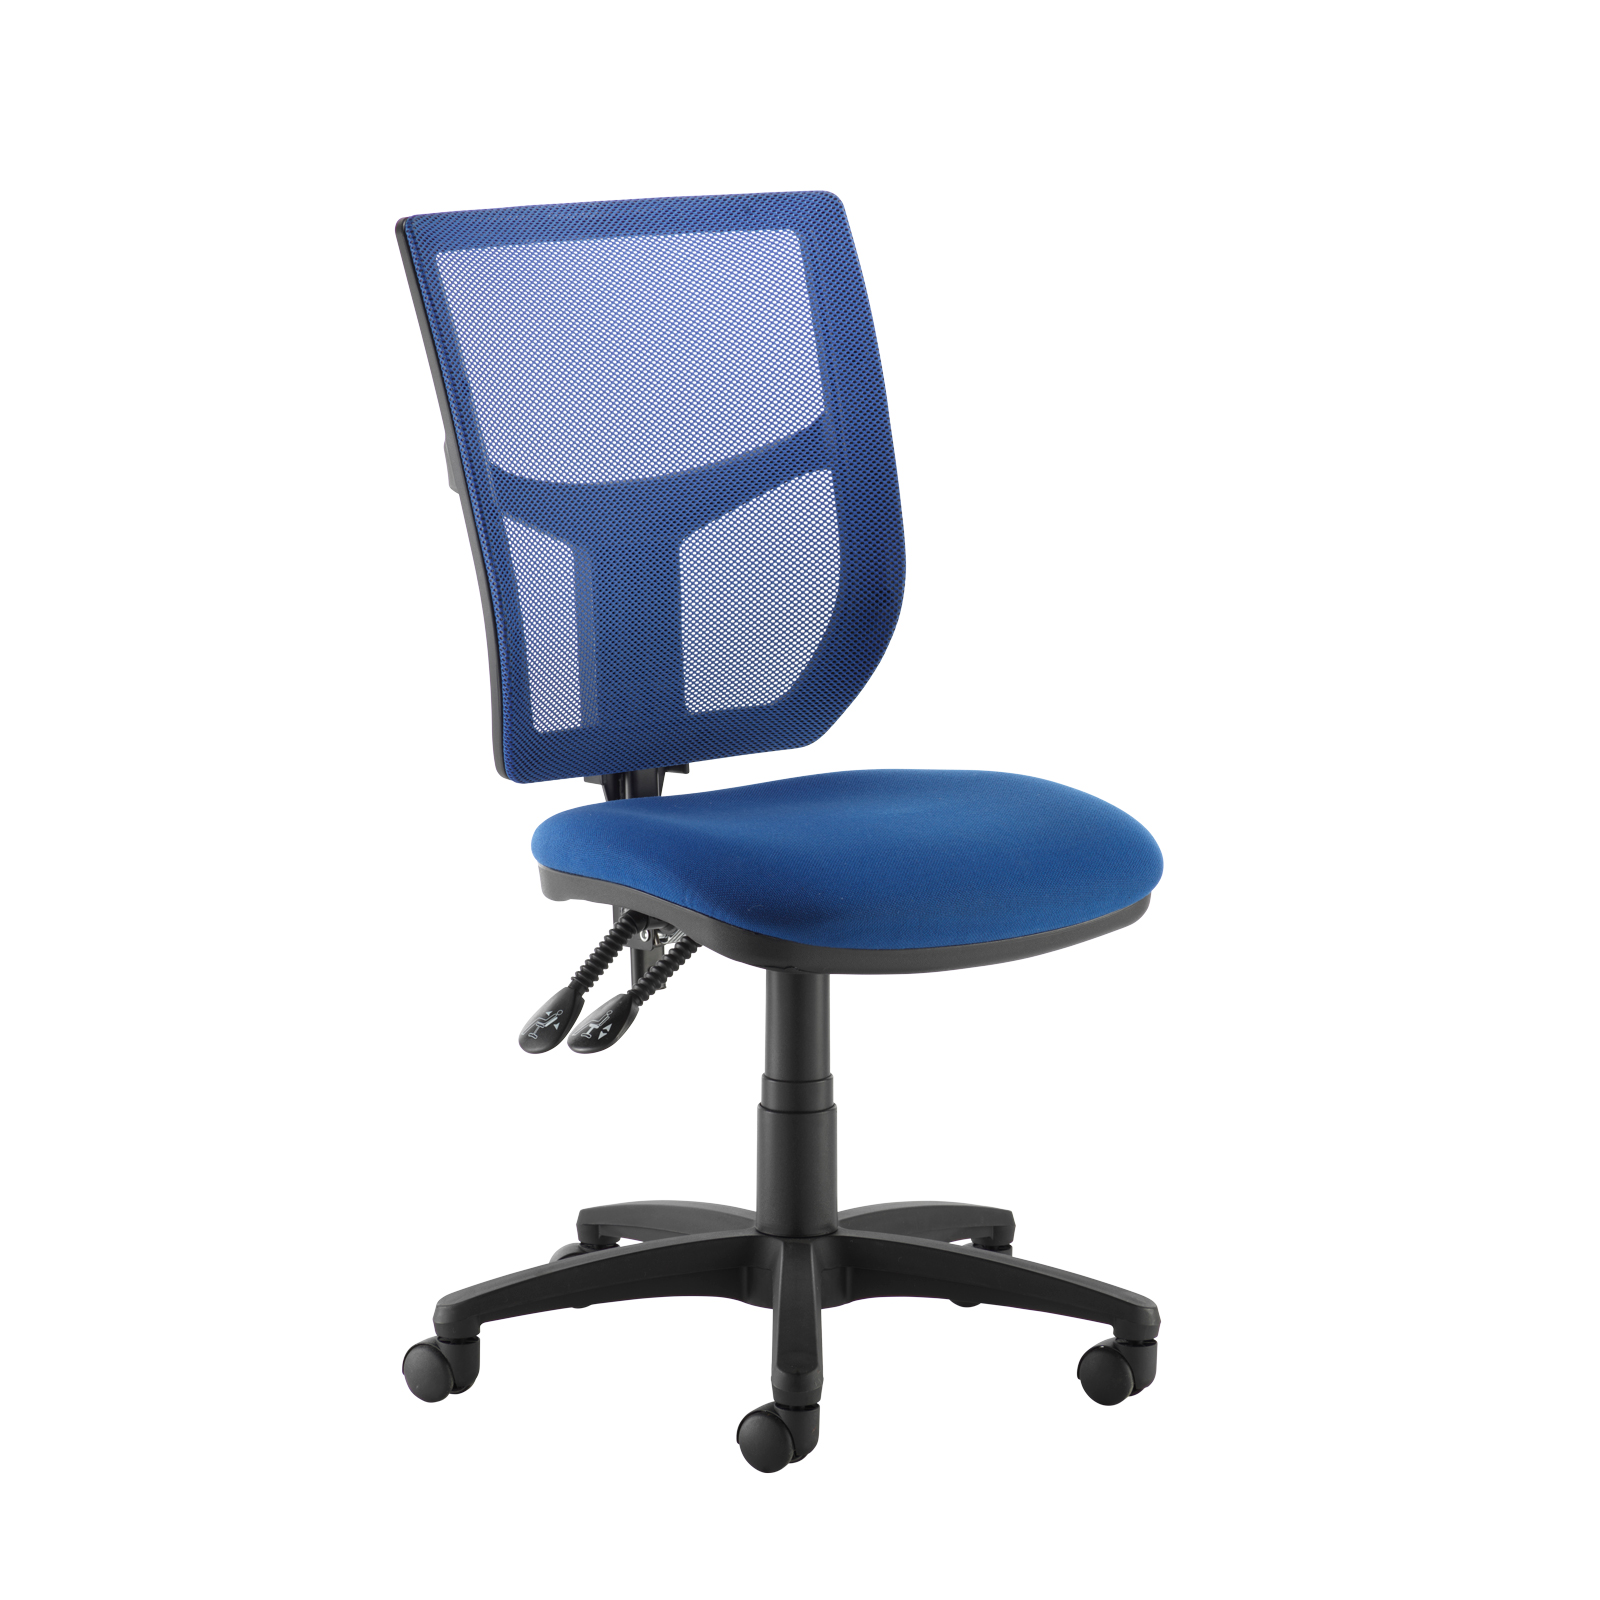 Straight Tops Altino coloured mesh back operators chair